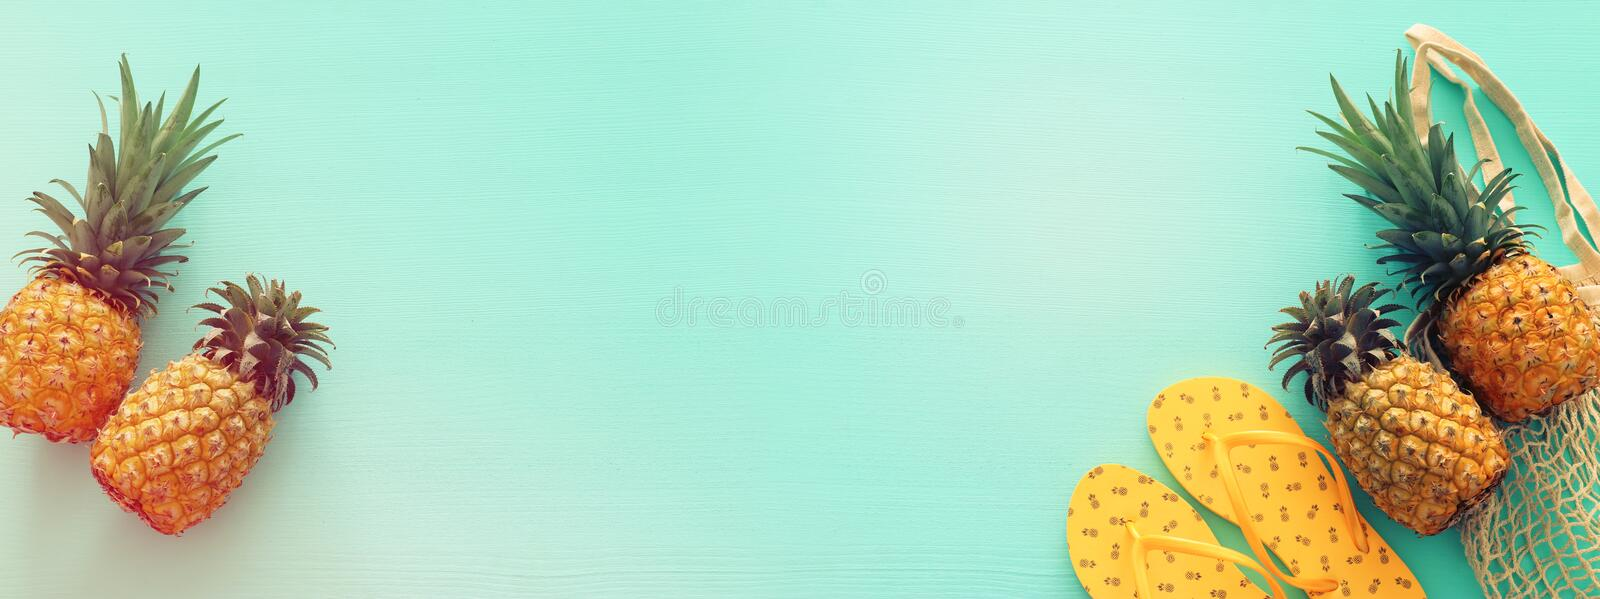 Ripe pineapple and beach sea life style objects over pastel mint blue wooden background. Tropical summer vacation concept. banner stock images